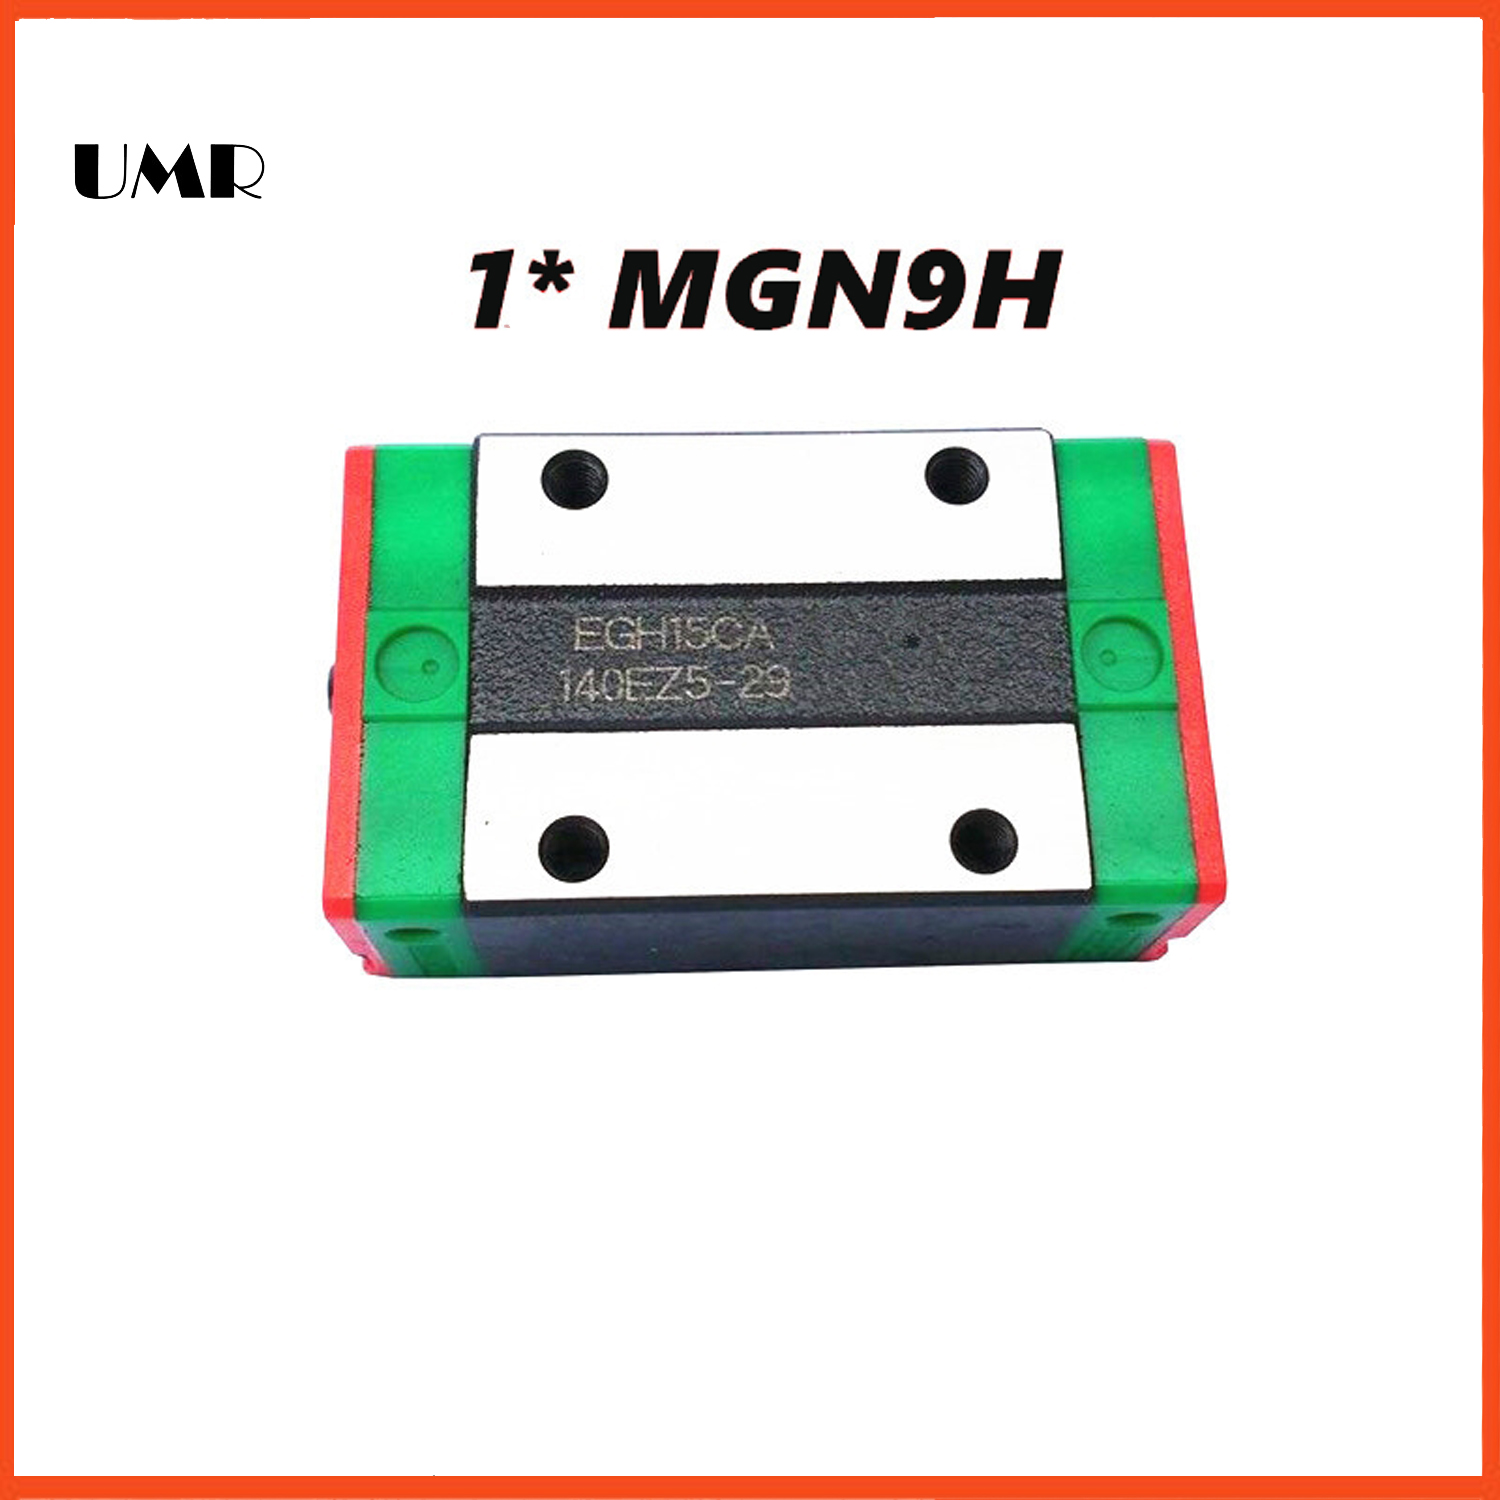 UMR bearings MGN9H block for MGN9 9mm Linear Guide 9mm linear rail way Long linear carriage for CNC X Y Z Axis linear bearings guides cpc linear guide linear guide unit